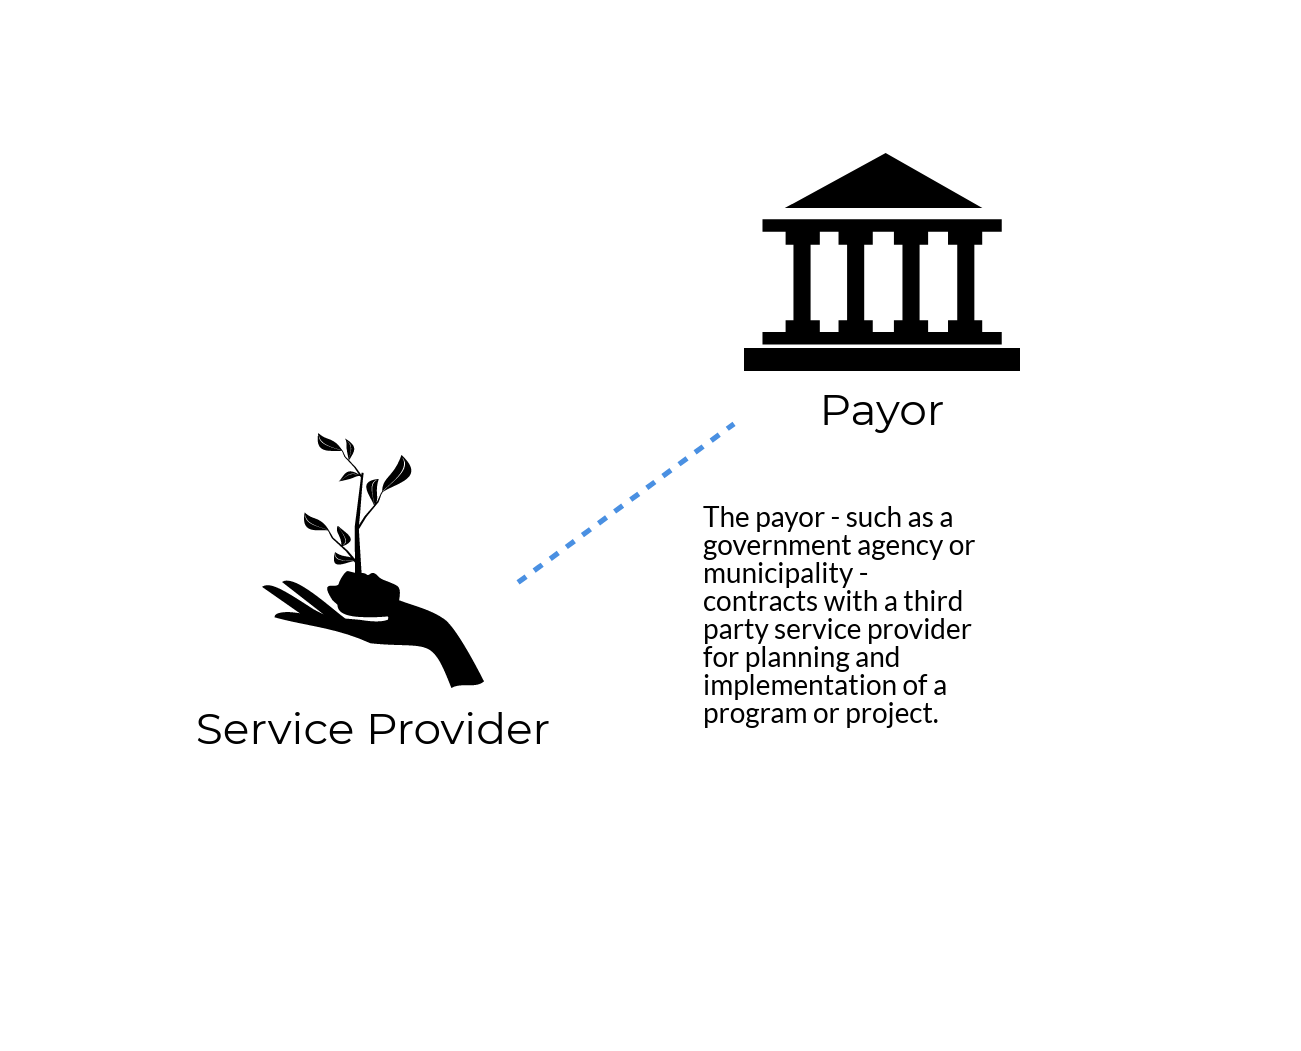 Step 1: The payor - such as a government agency or municipality - contracts with a third part service provider for planning and implementation of a program or project. Graphic courtesy: Environmental Incentives